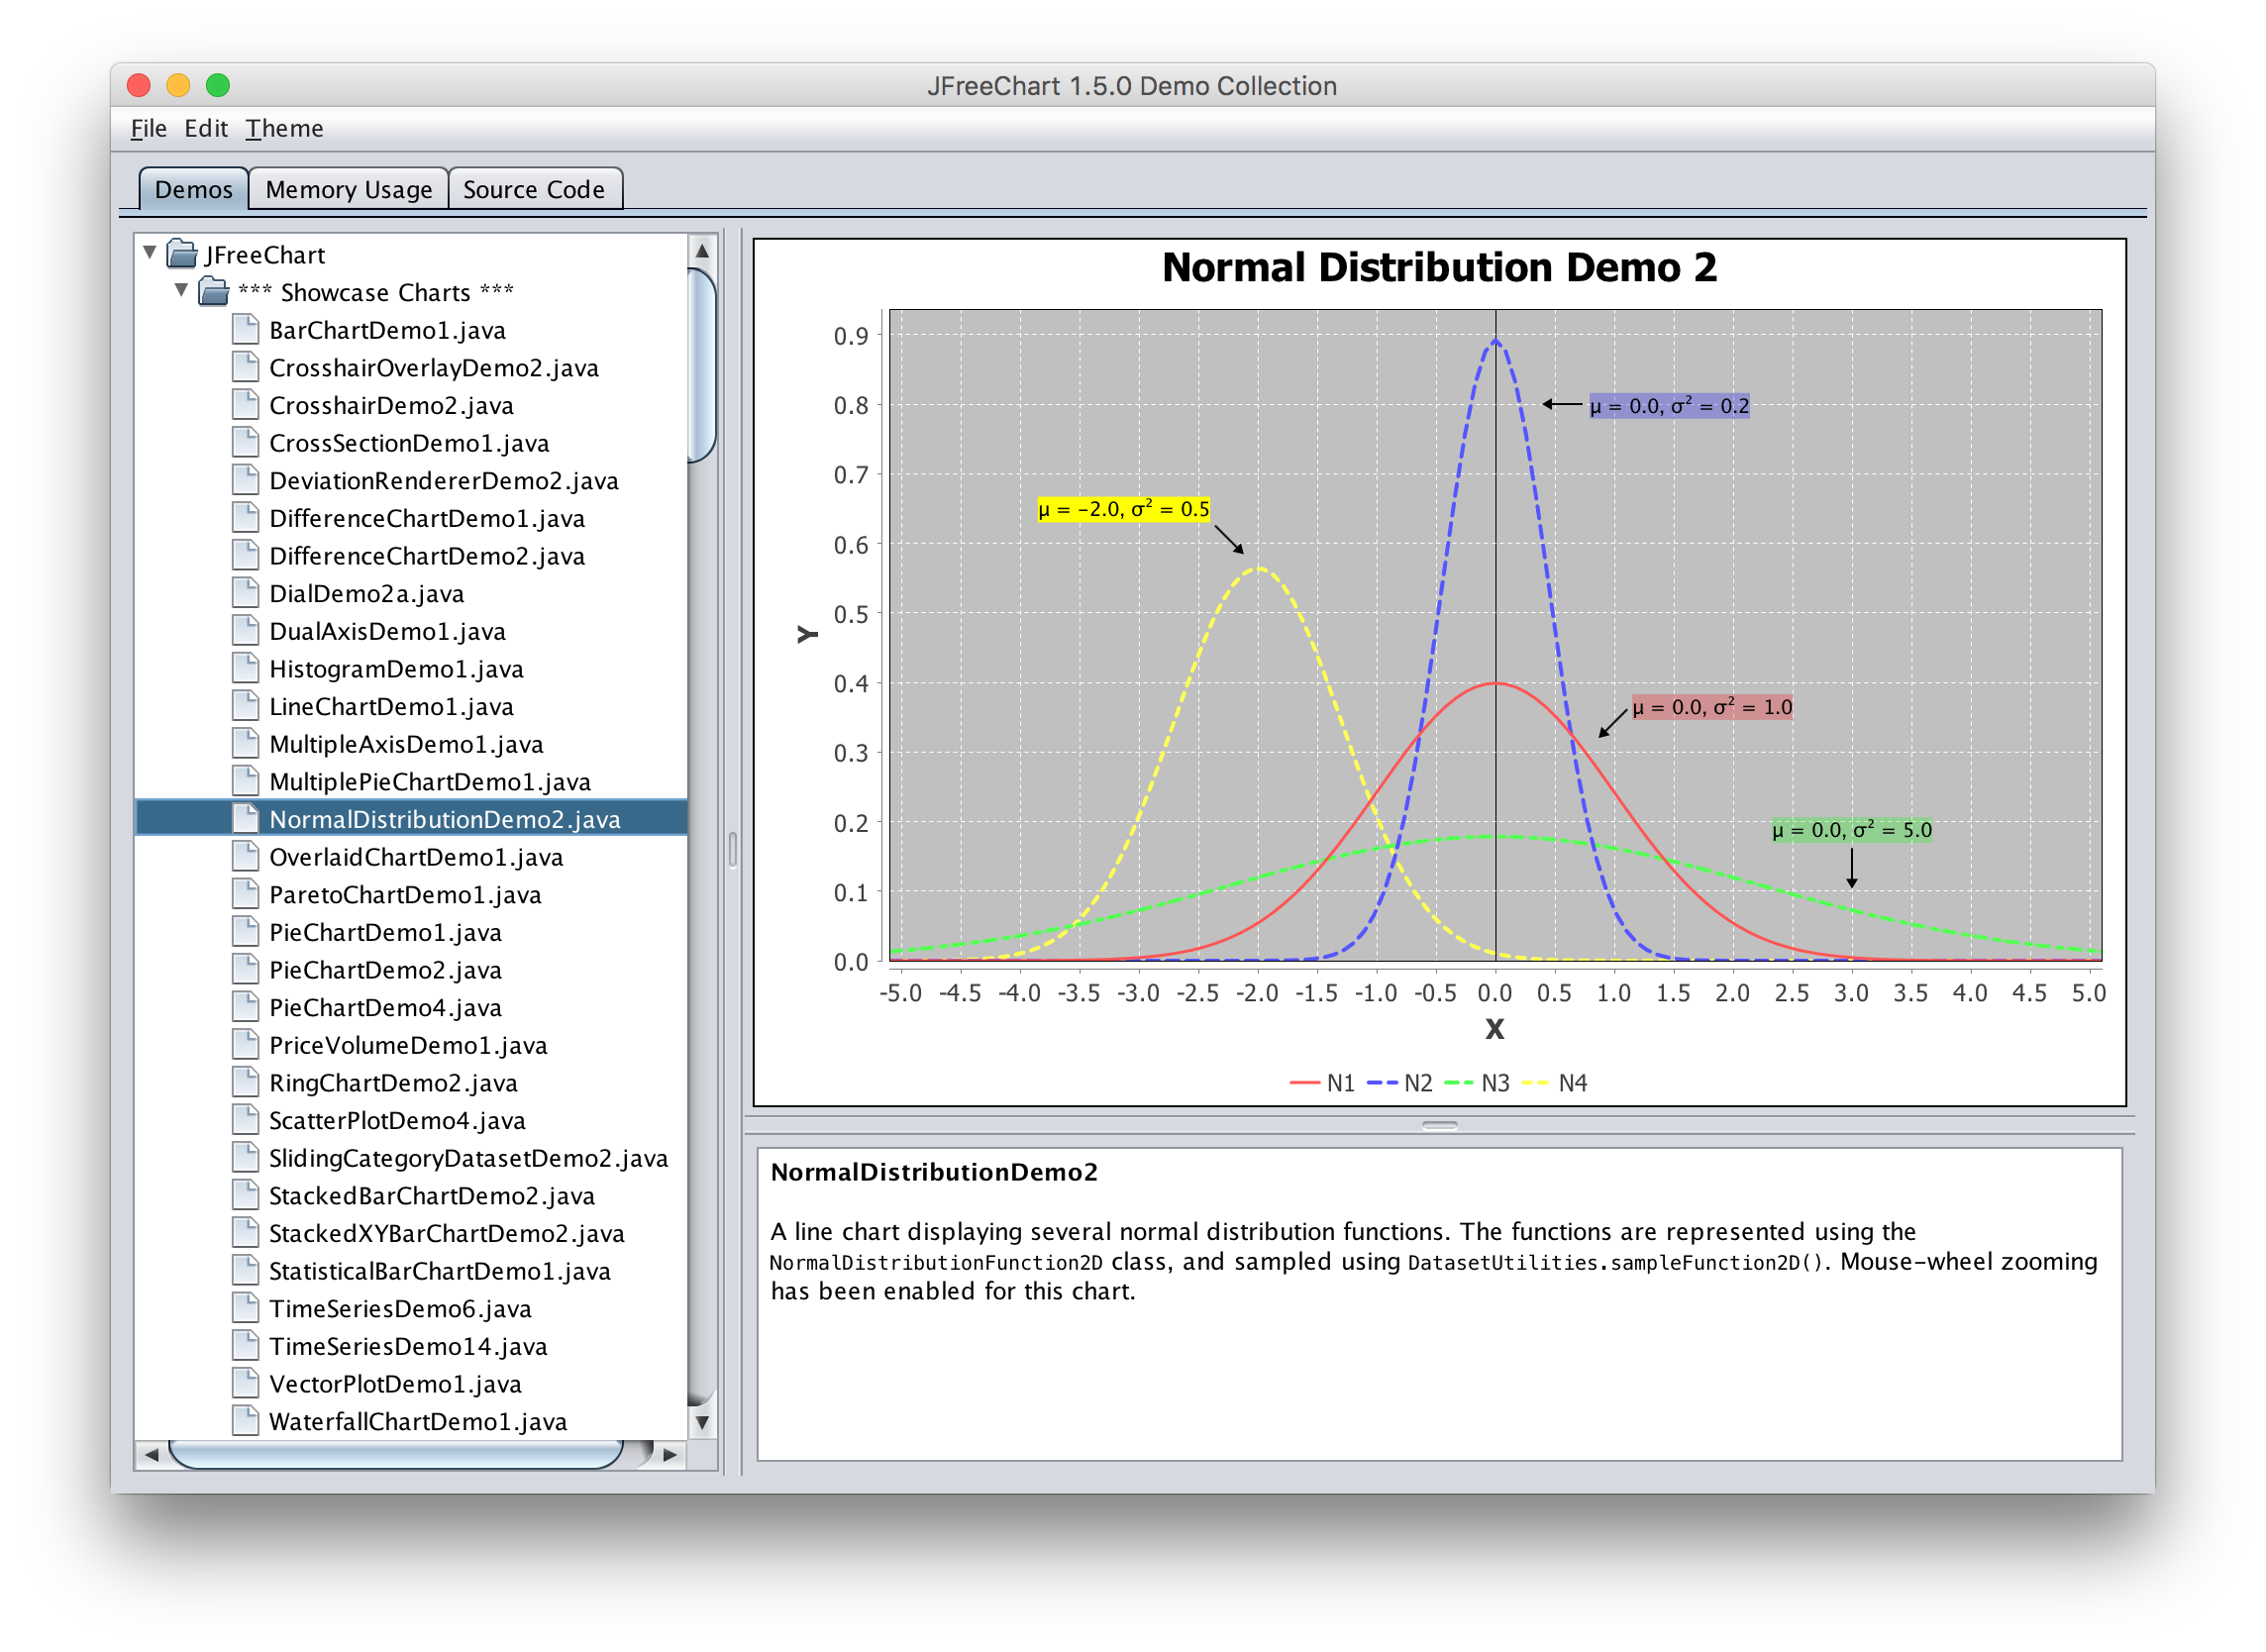 jfreechart-demo-1.5.0-screenshot.png